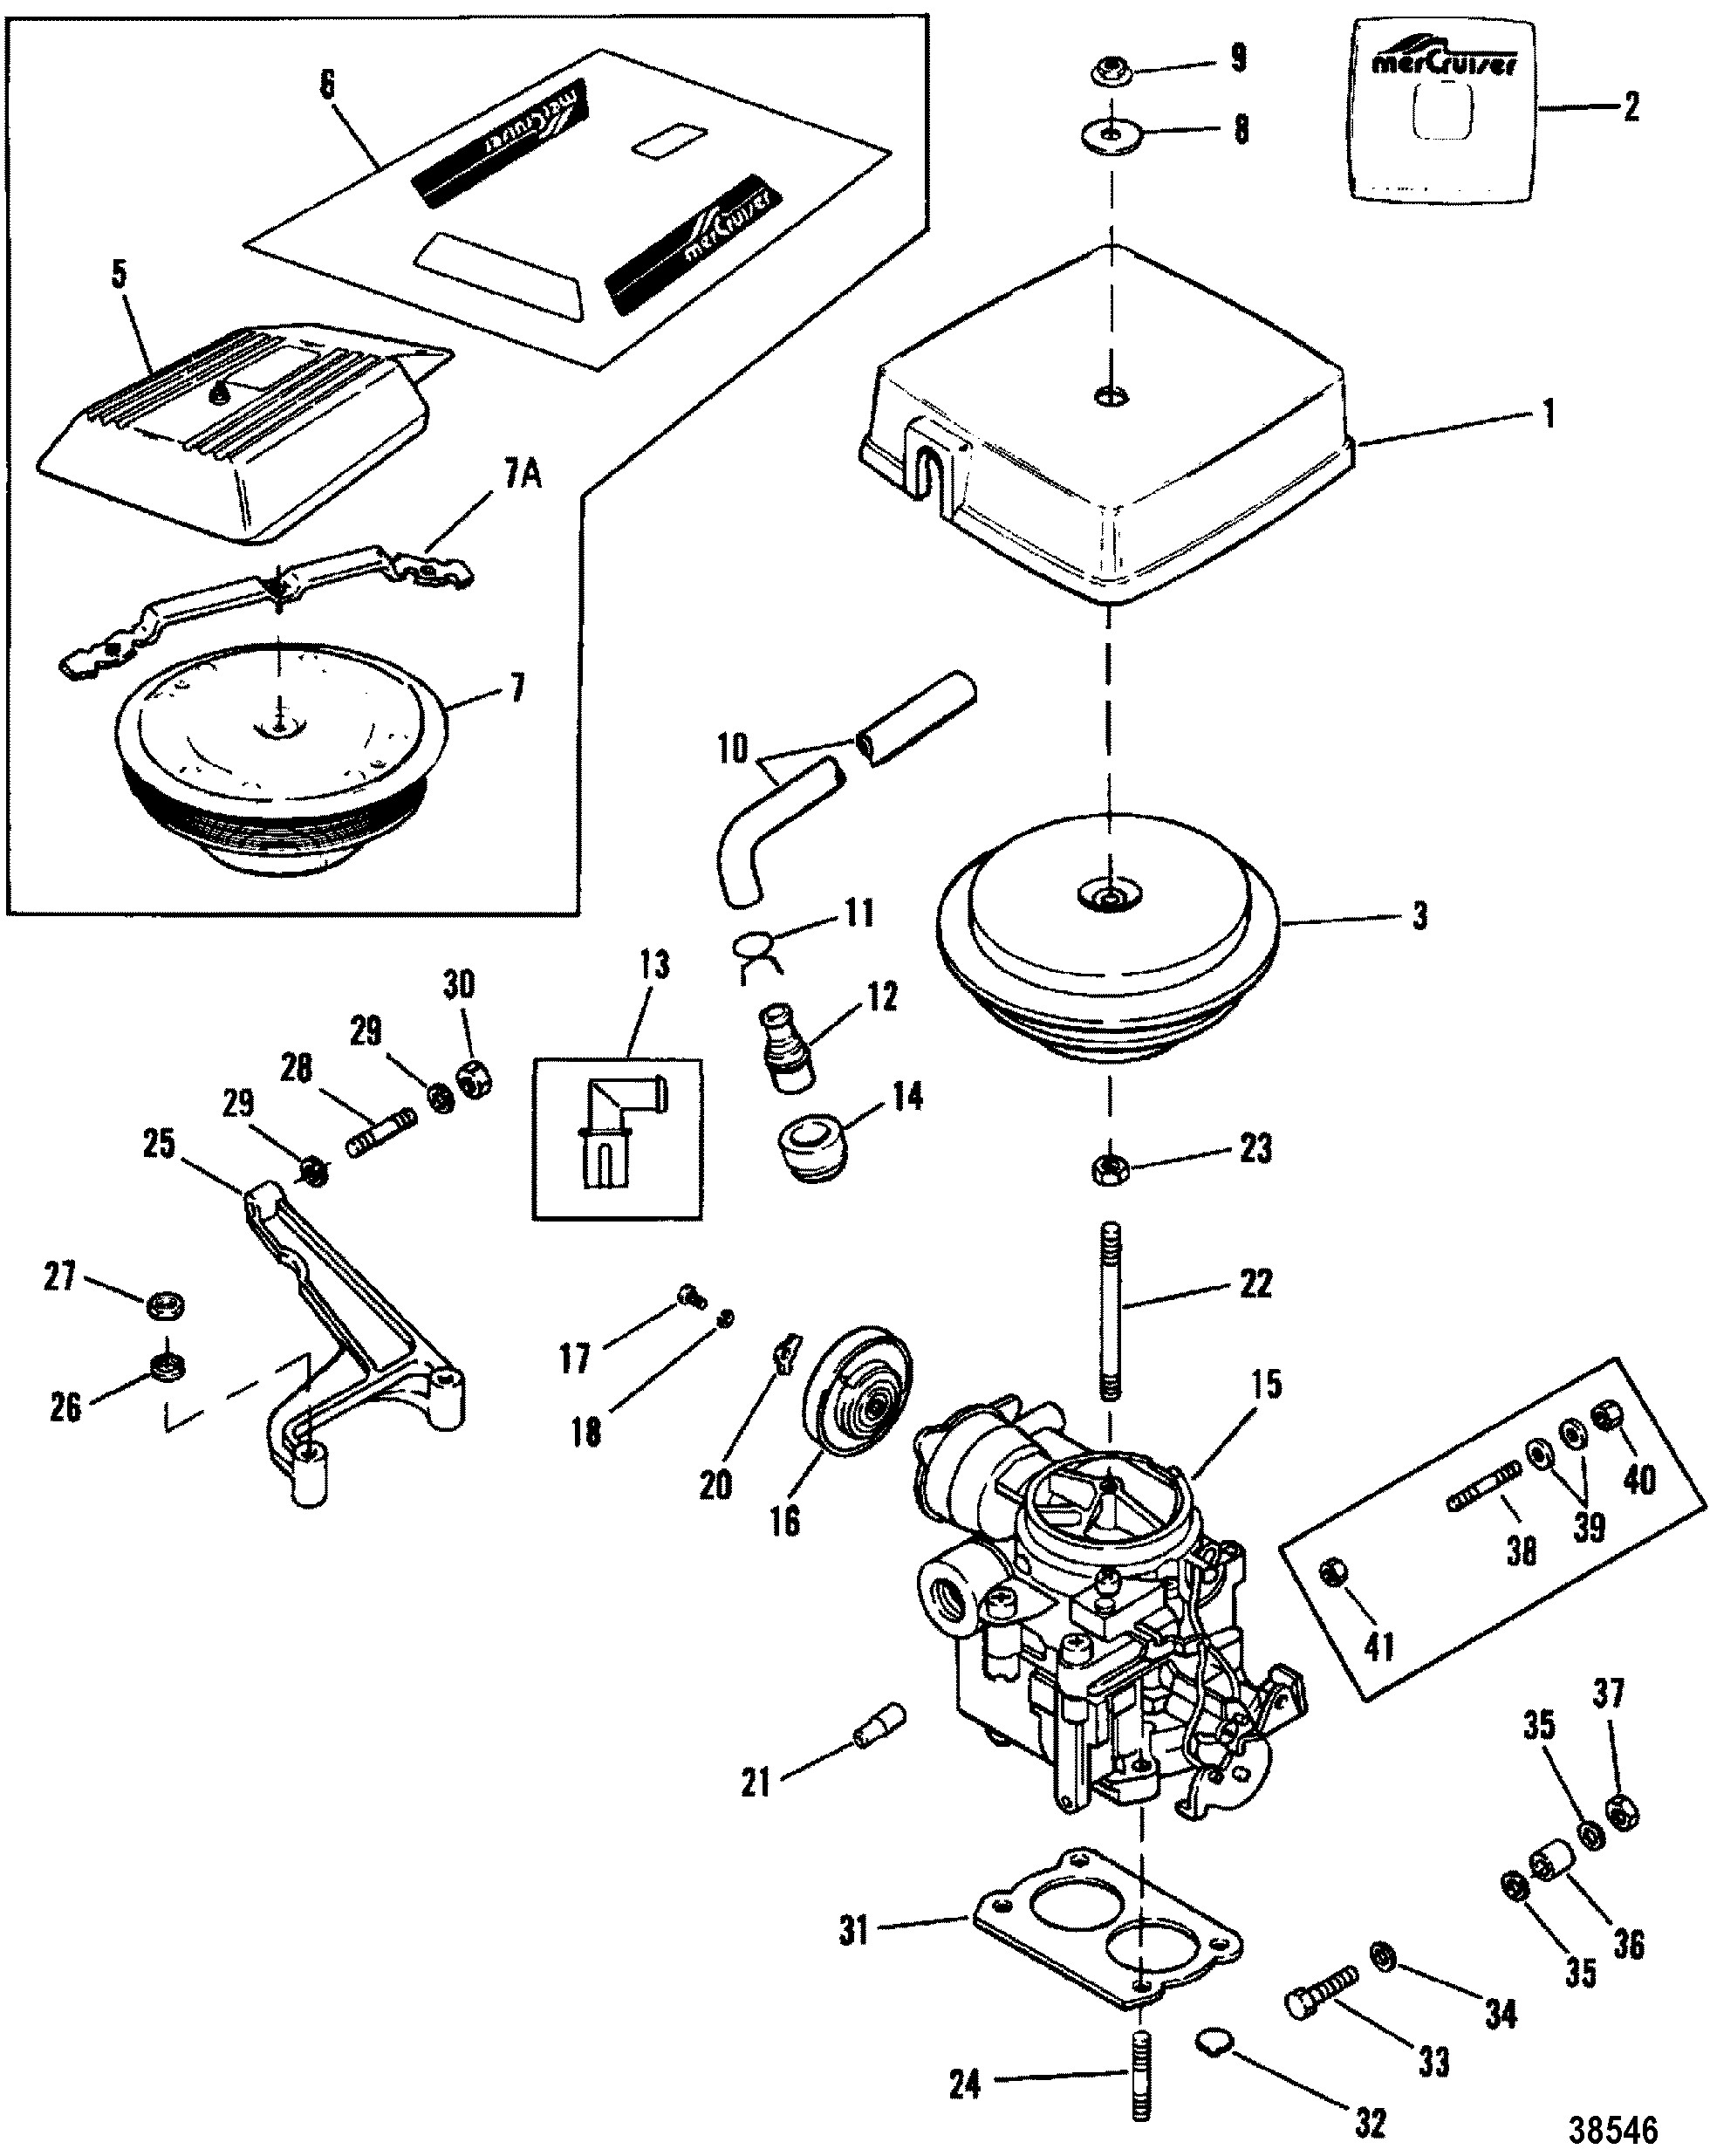 350 Mercruiser Engine Diagram Carburetor Throttle Linkage 2 Barrel for Mercruiser 200 5 0l Lx 260 Of 350 Mercruiser Engine Diagram КатаРог запчастей Mercruiser остаРьные 5 7l Mpi Mie Ec 1a Thru